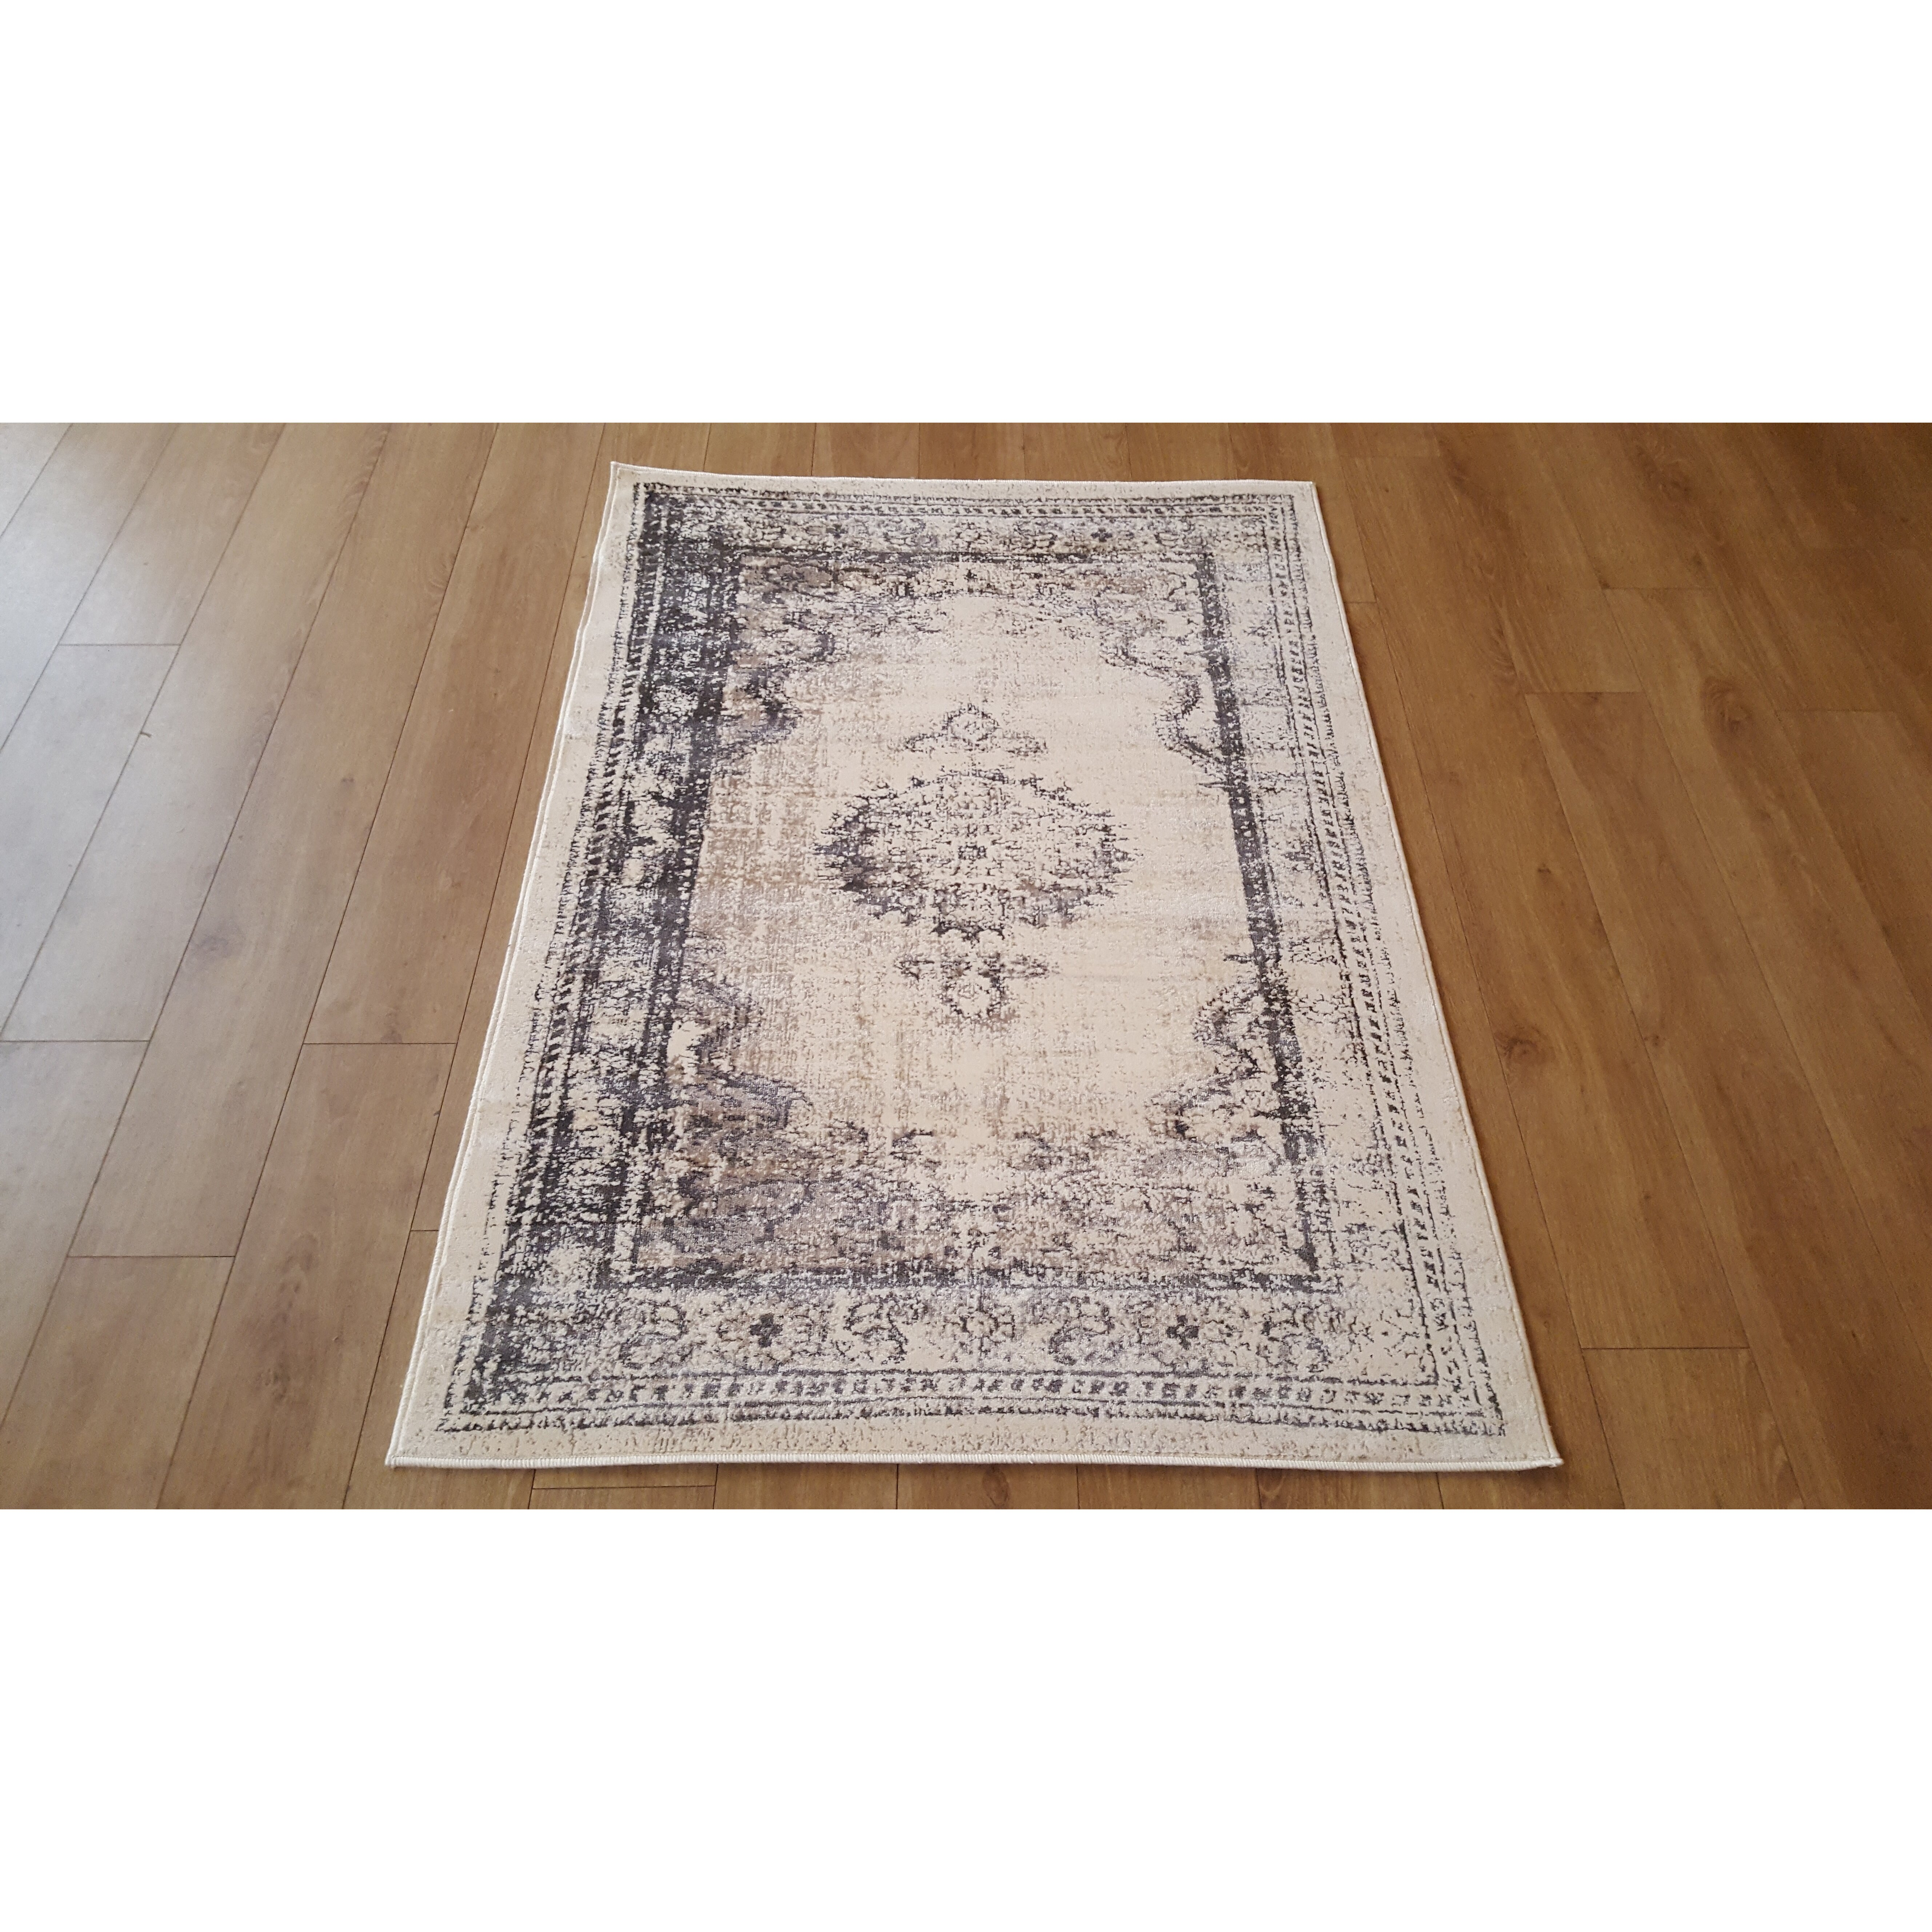 Barefoot artsilk rugs persian antika warm beige area rug for Warm rugs